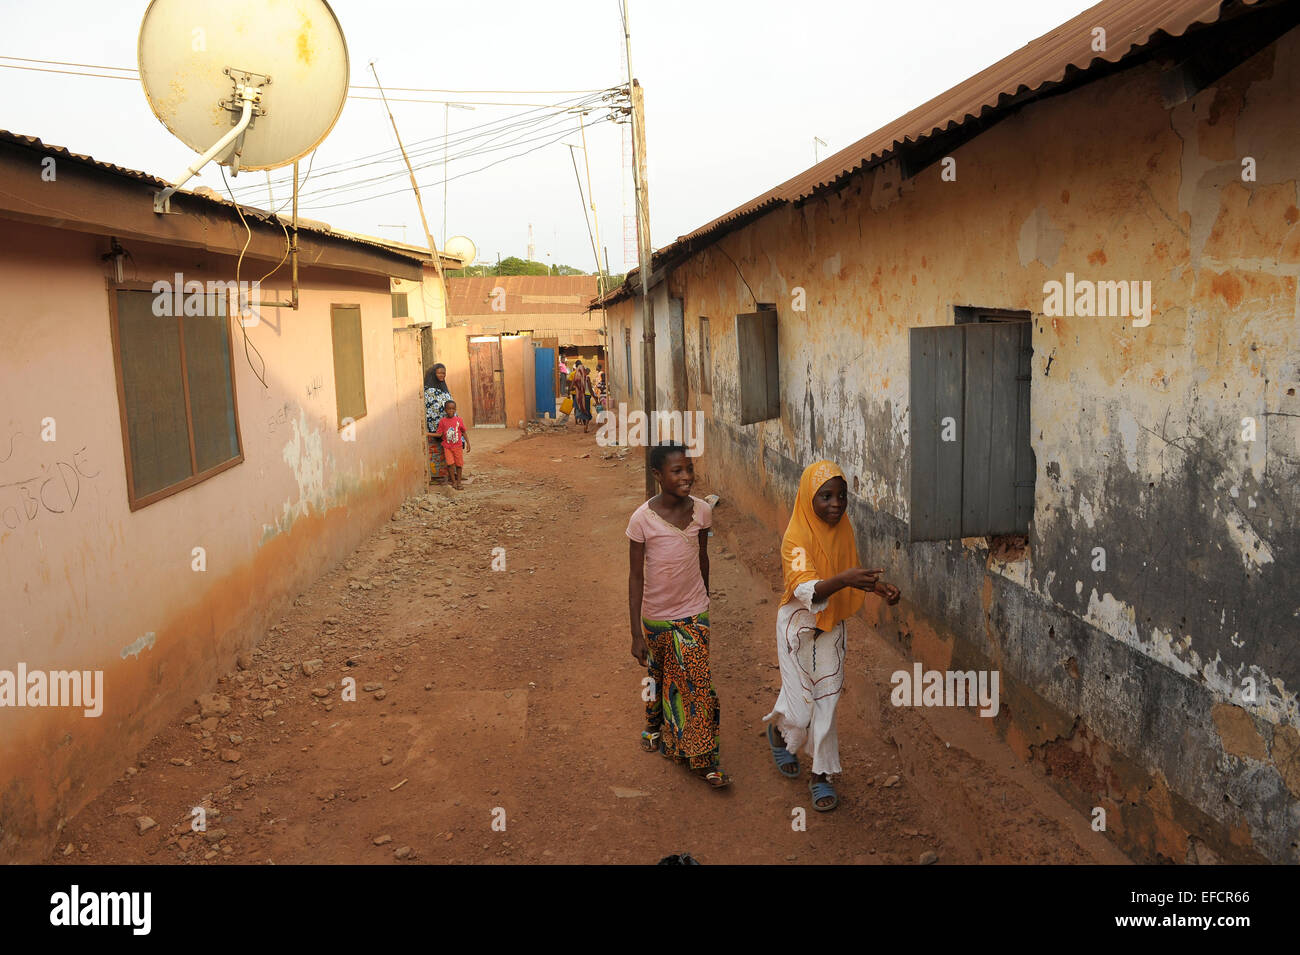 Girls walking through an alleyway in Accra, Ghana, West Africa. - Stock Image